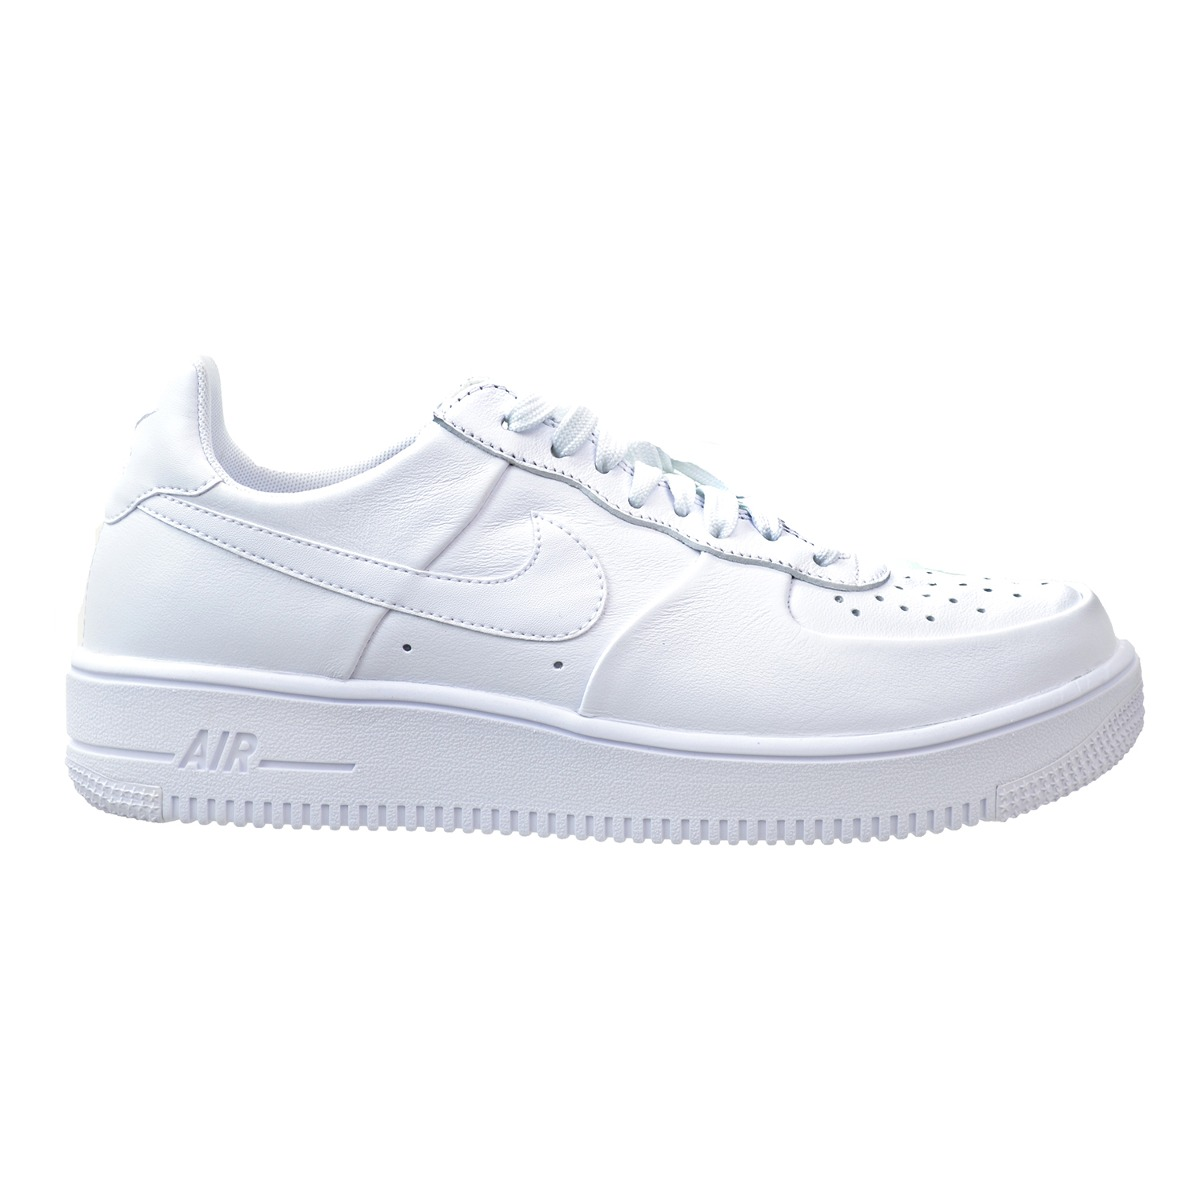 Nike Air Force 1 Ultraforce Hombre Blanco / Negro 845052-100